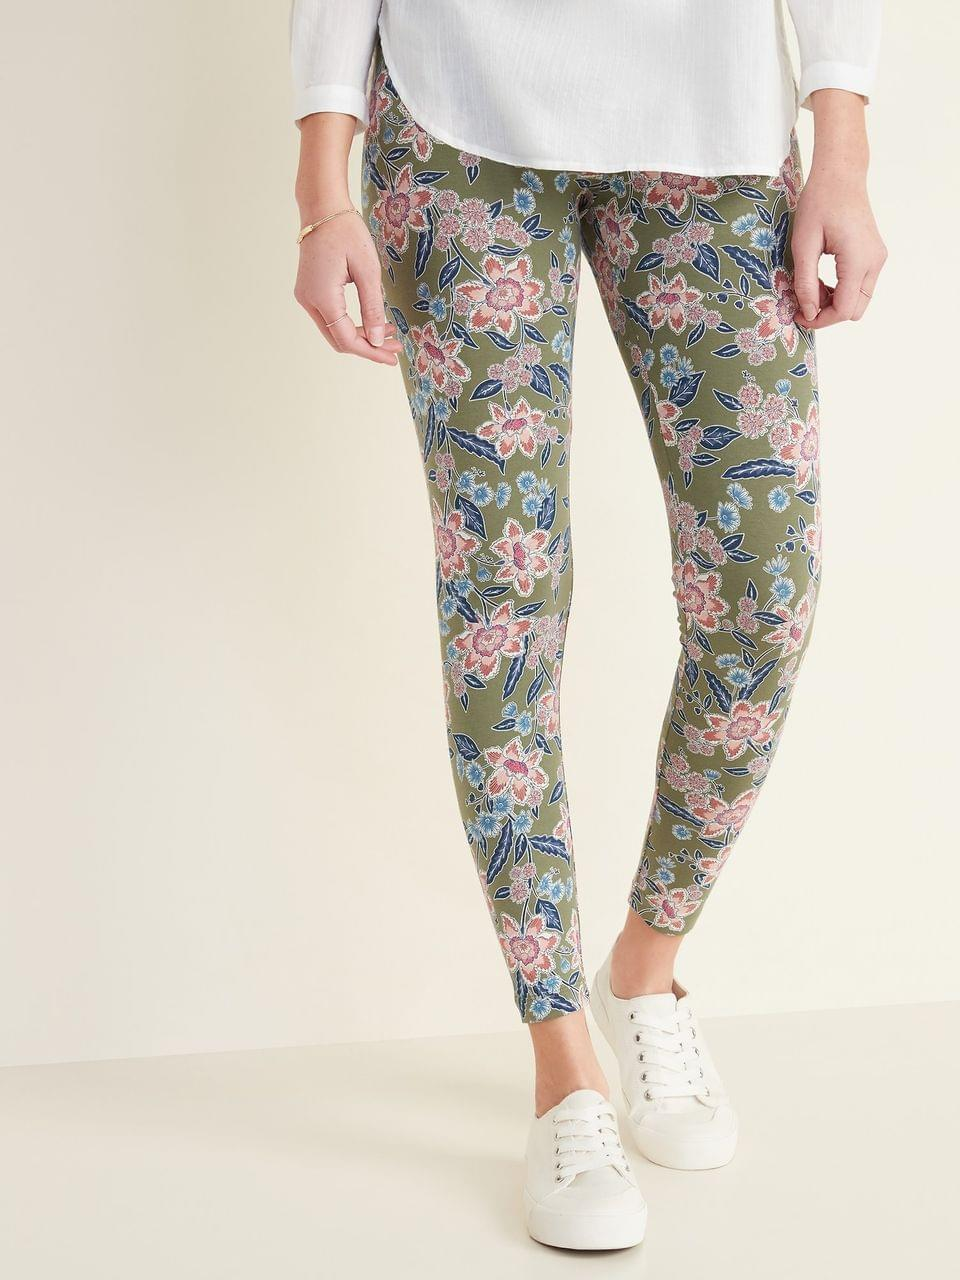 Women's High-Waisted Printed Leggings for Women